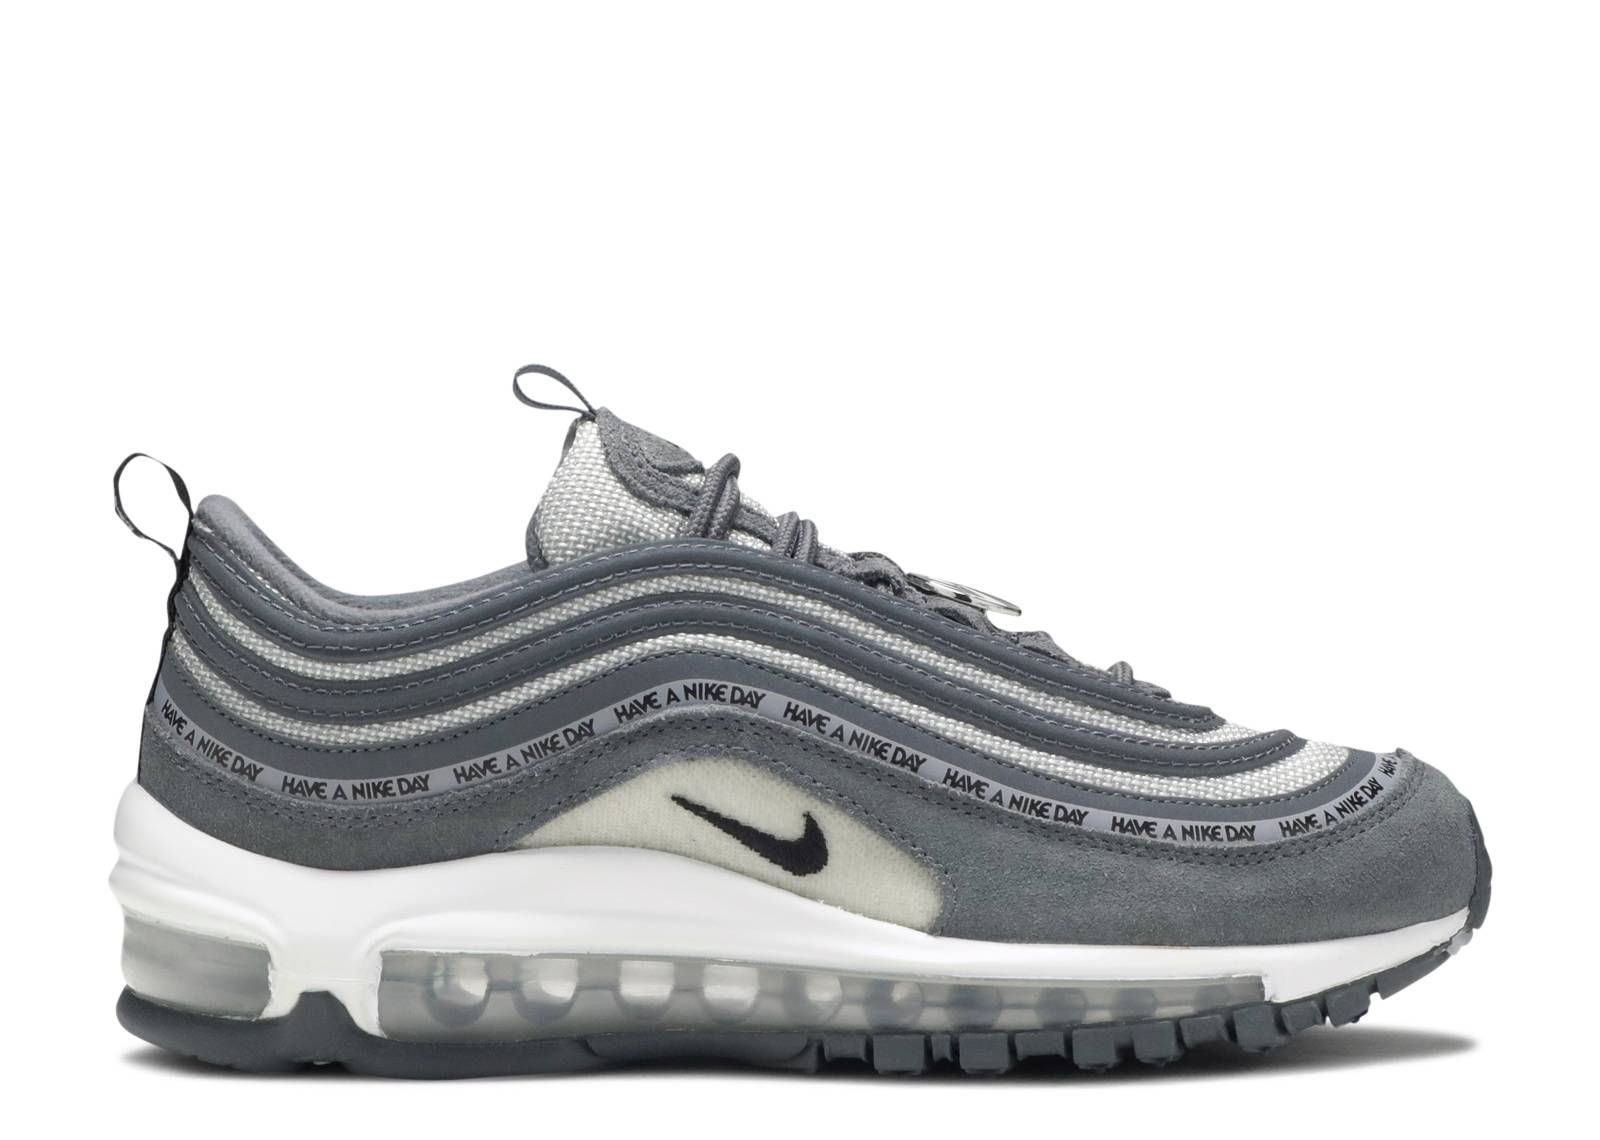 air max 97 have a nike day gray